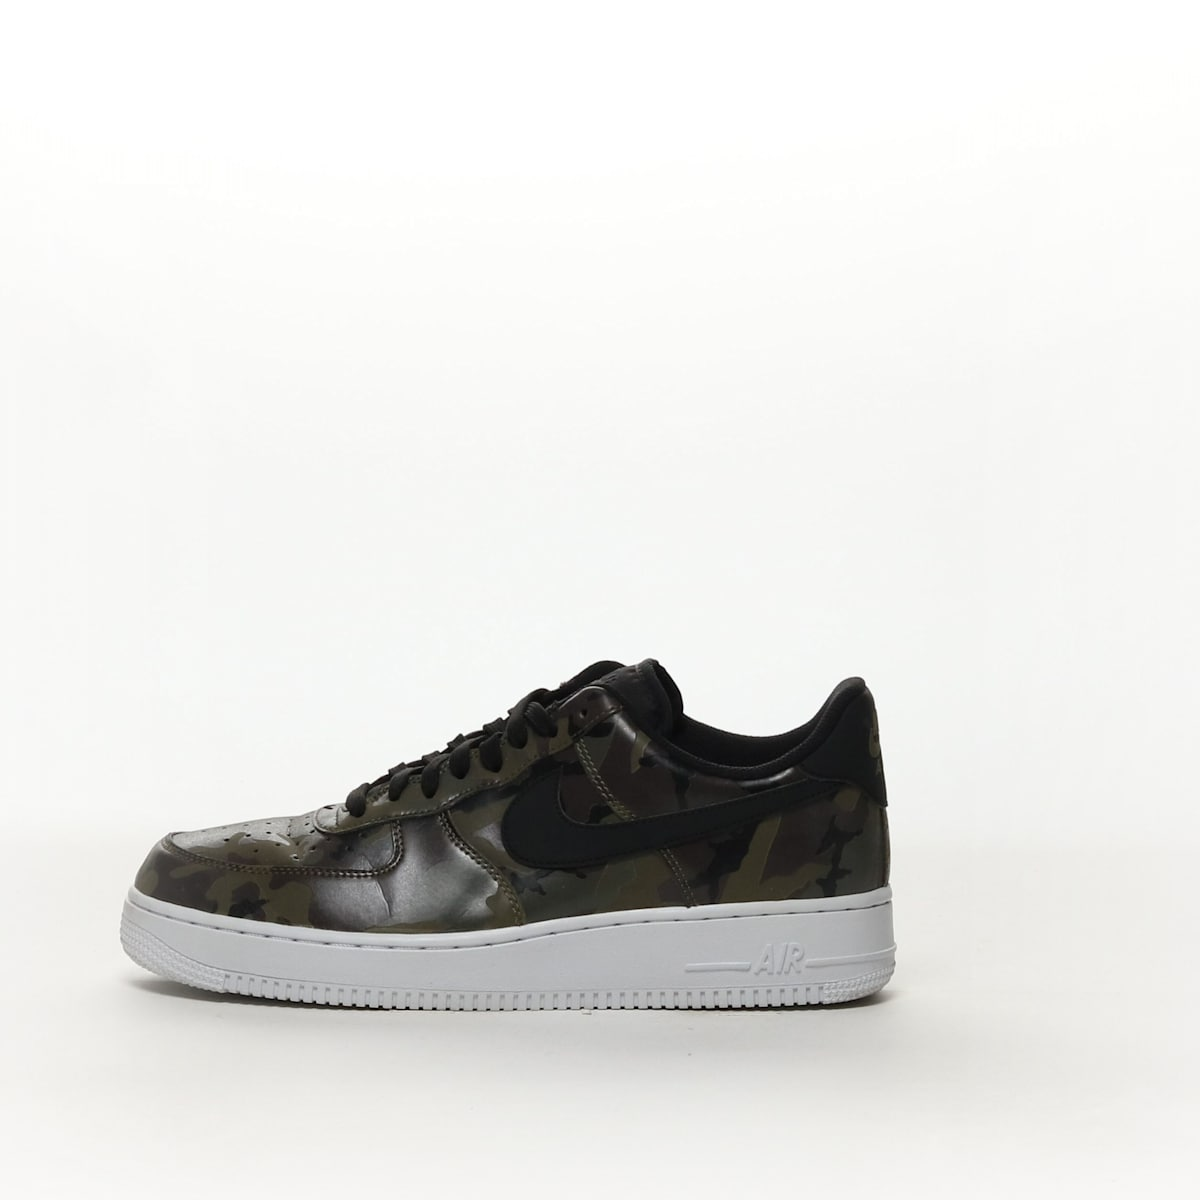 new style fe4b1 f9699 Nike air force 1  07 low camo ...